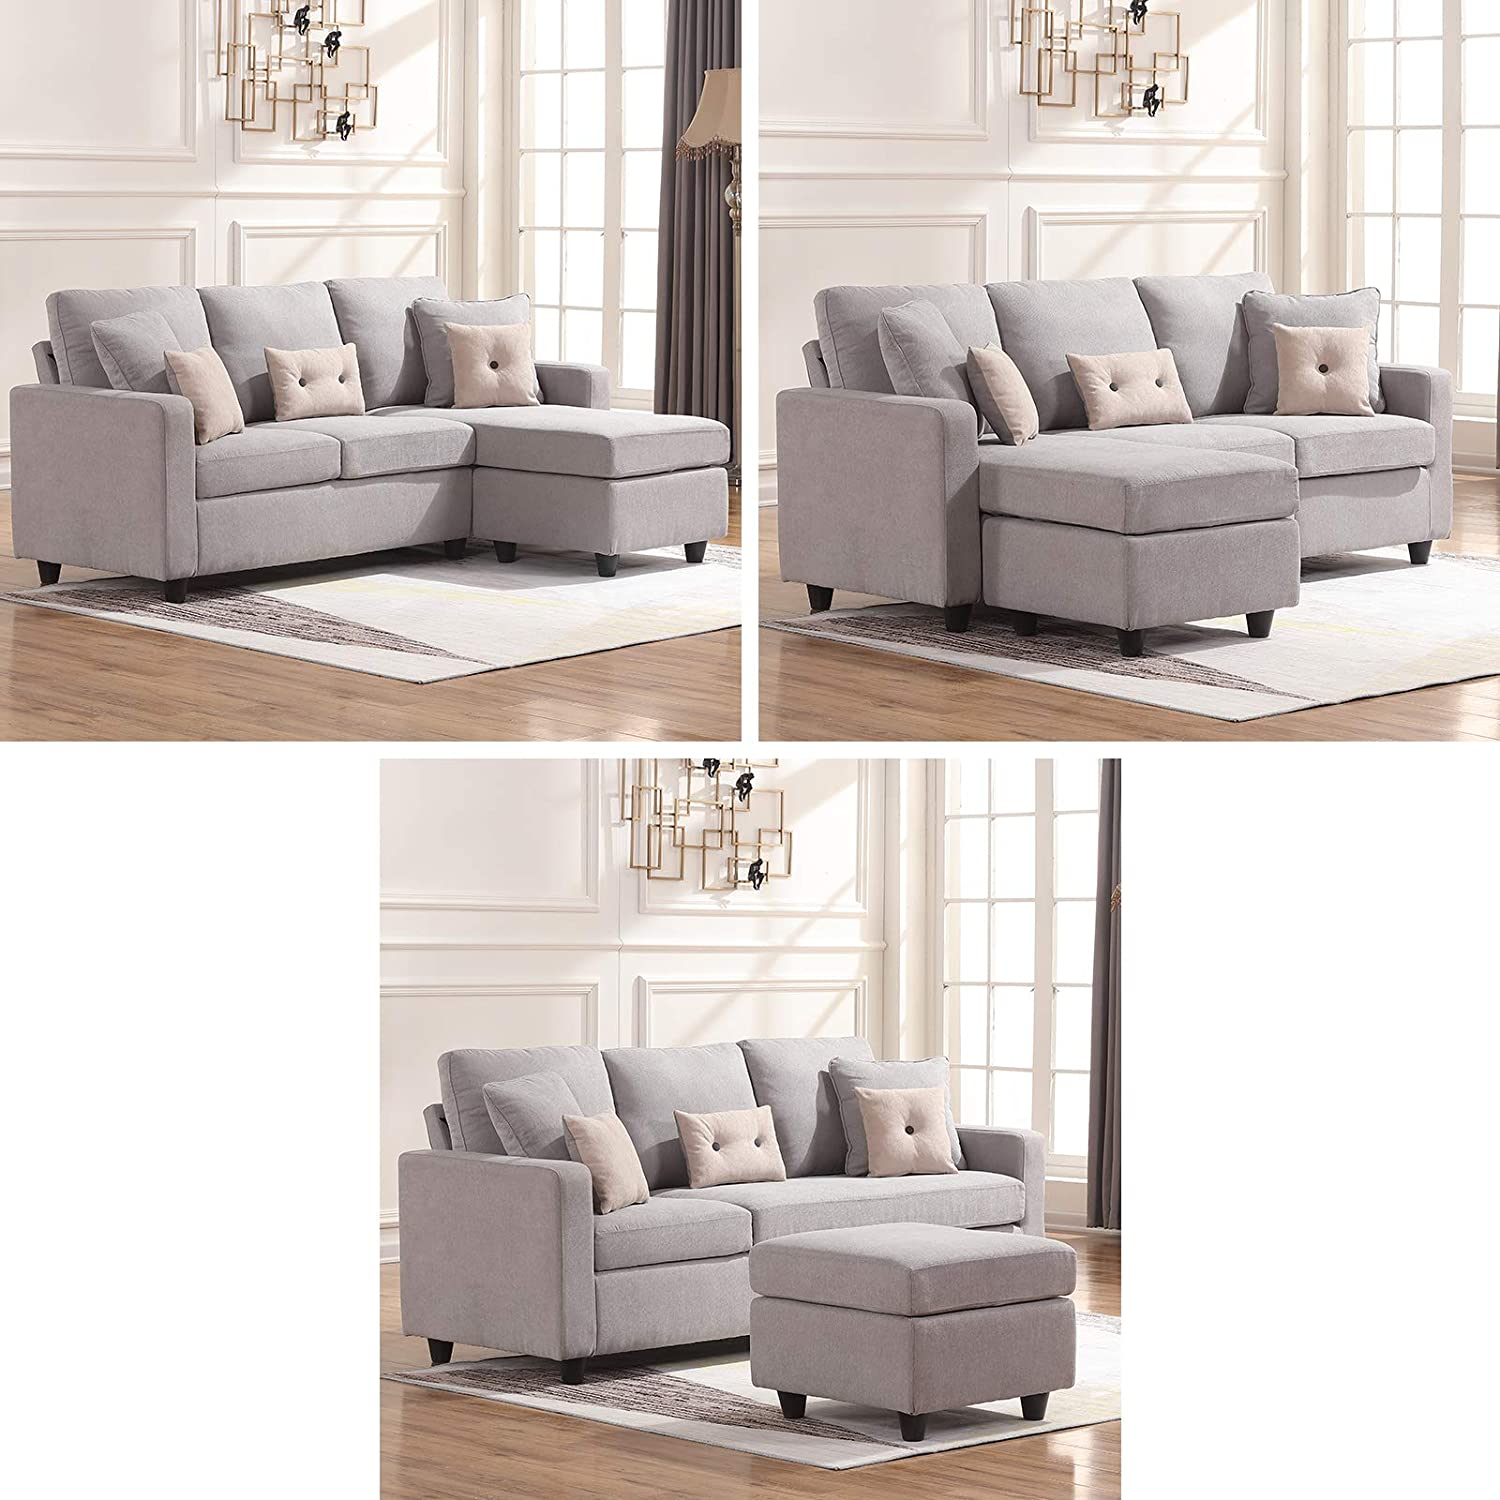 L-Shaped Couch with Modern Linen Fabric for Small Space Light Grey